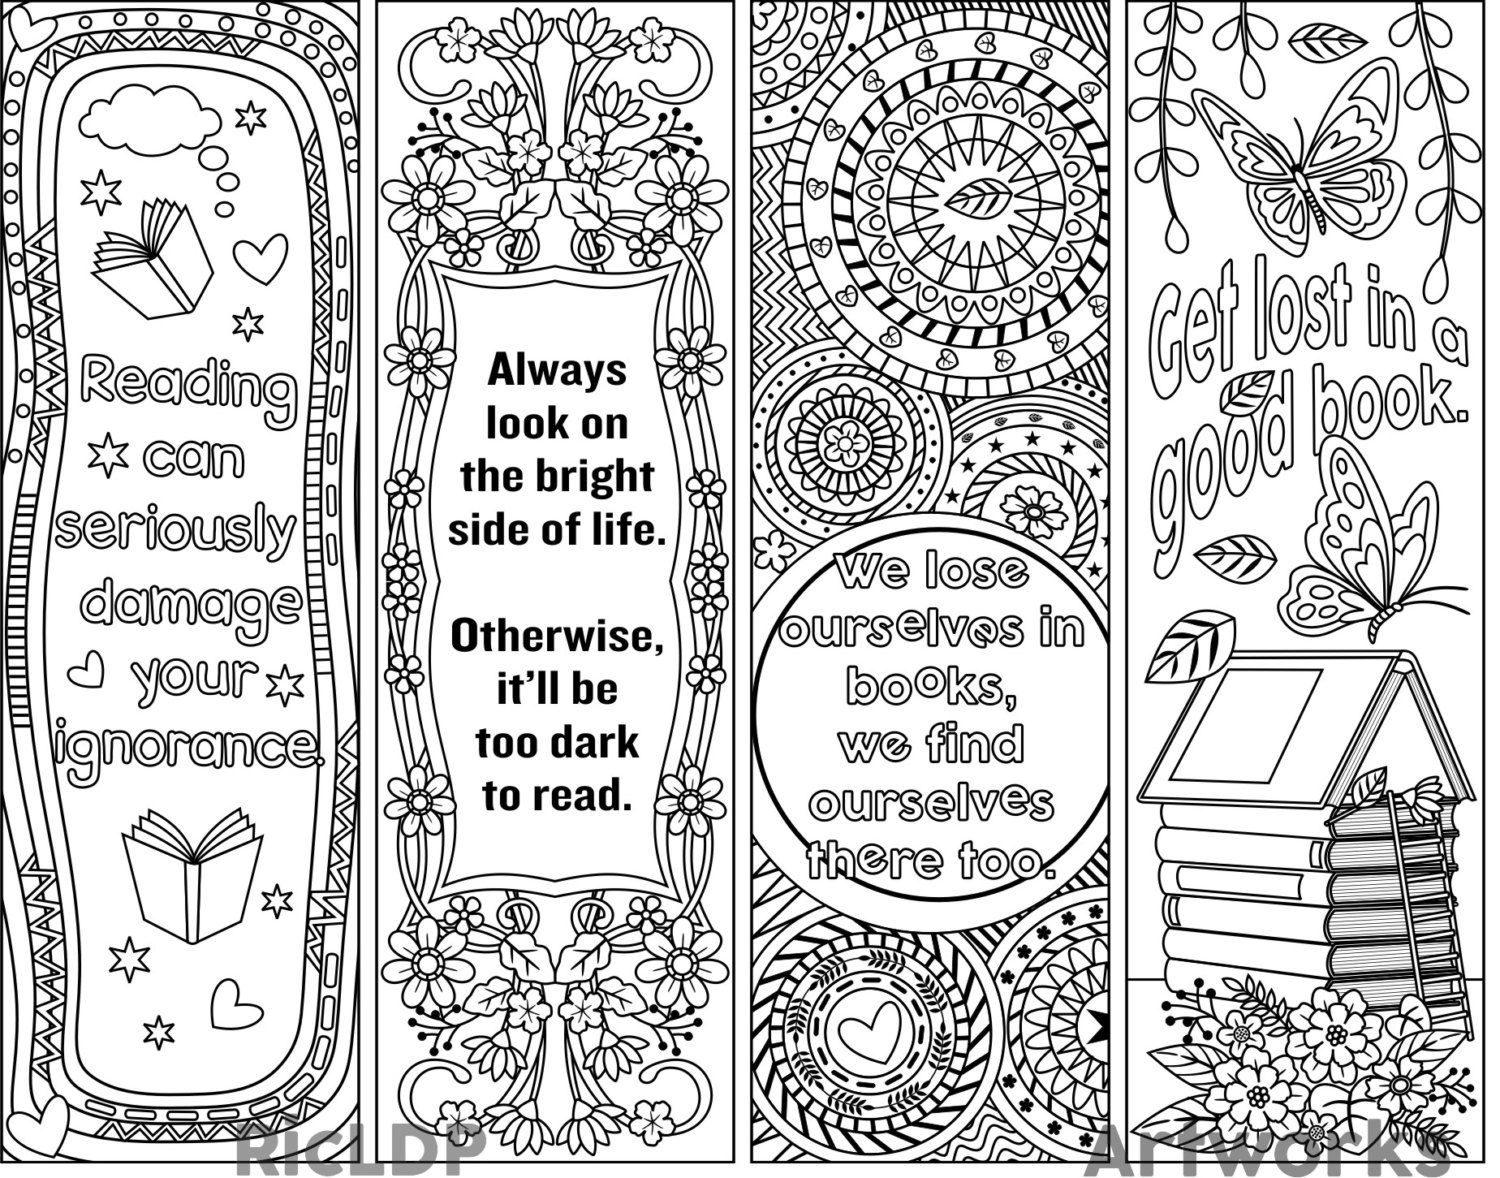 free bookmark templates - set of 4 coloring bookmarks with quotes plus the colored